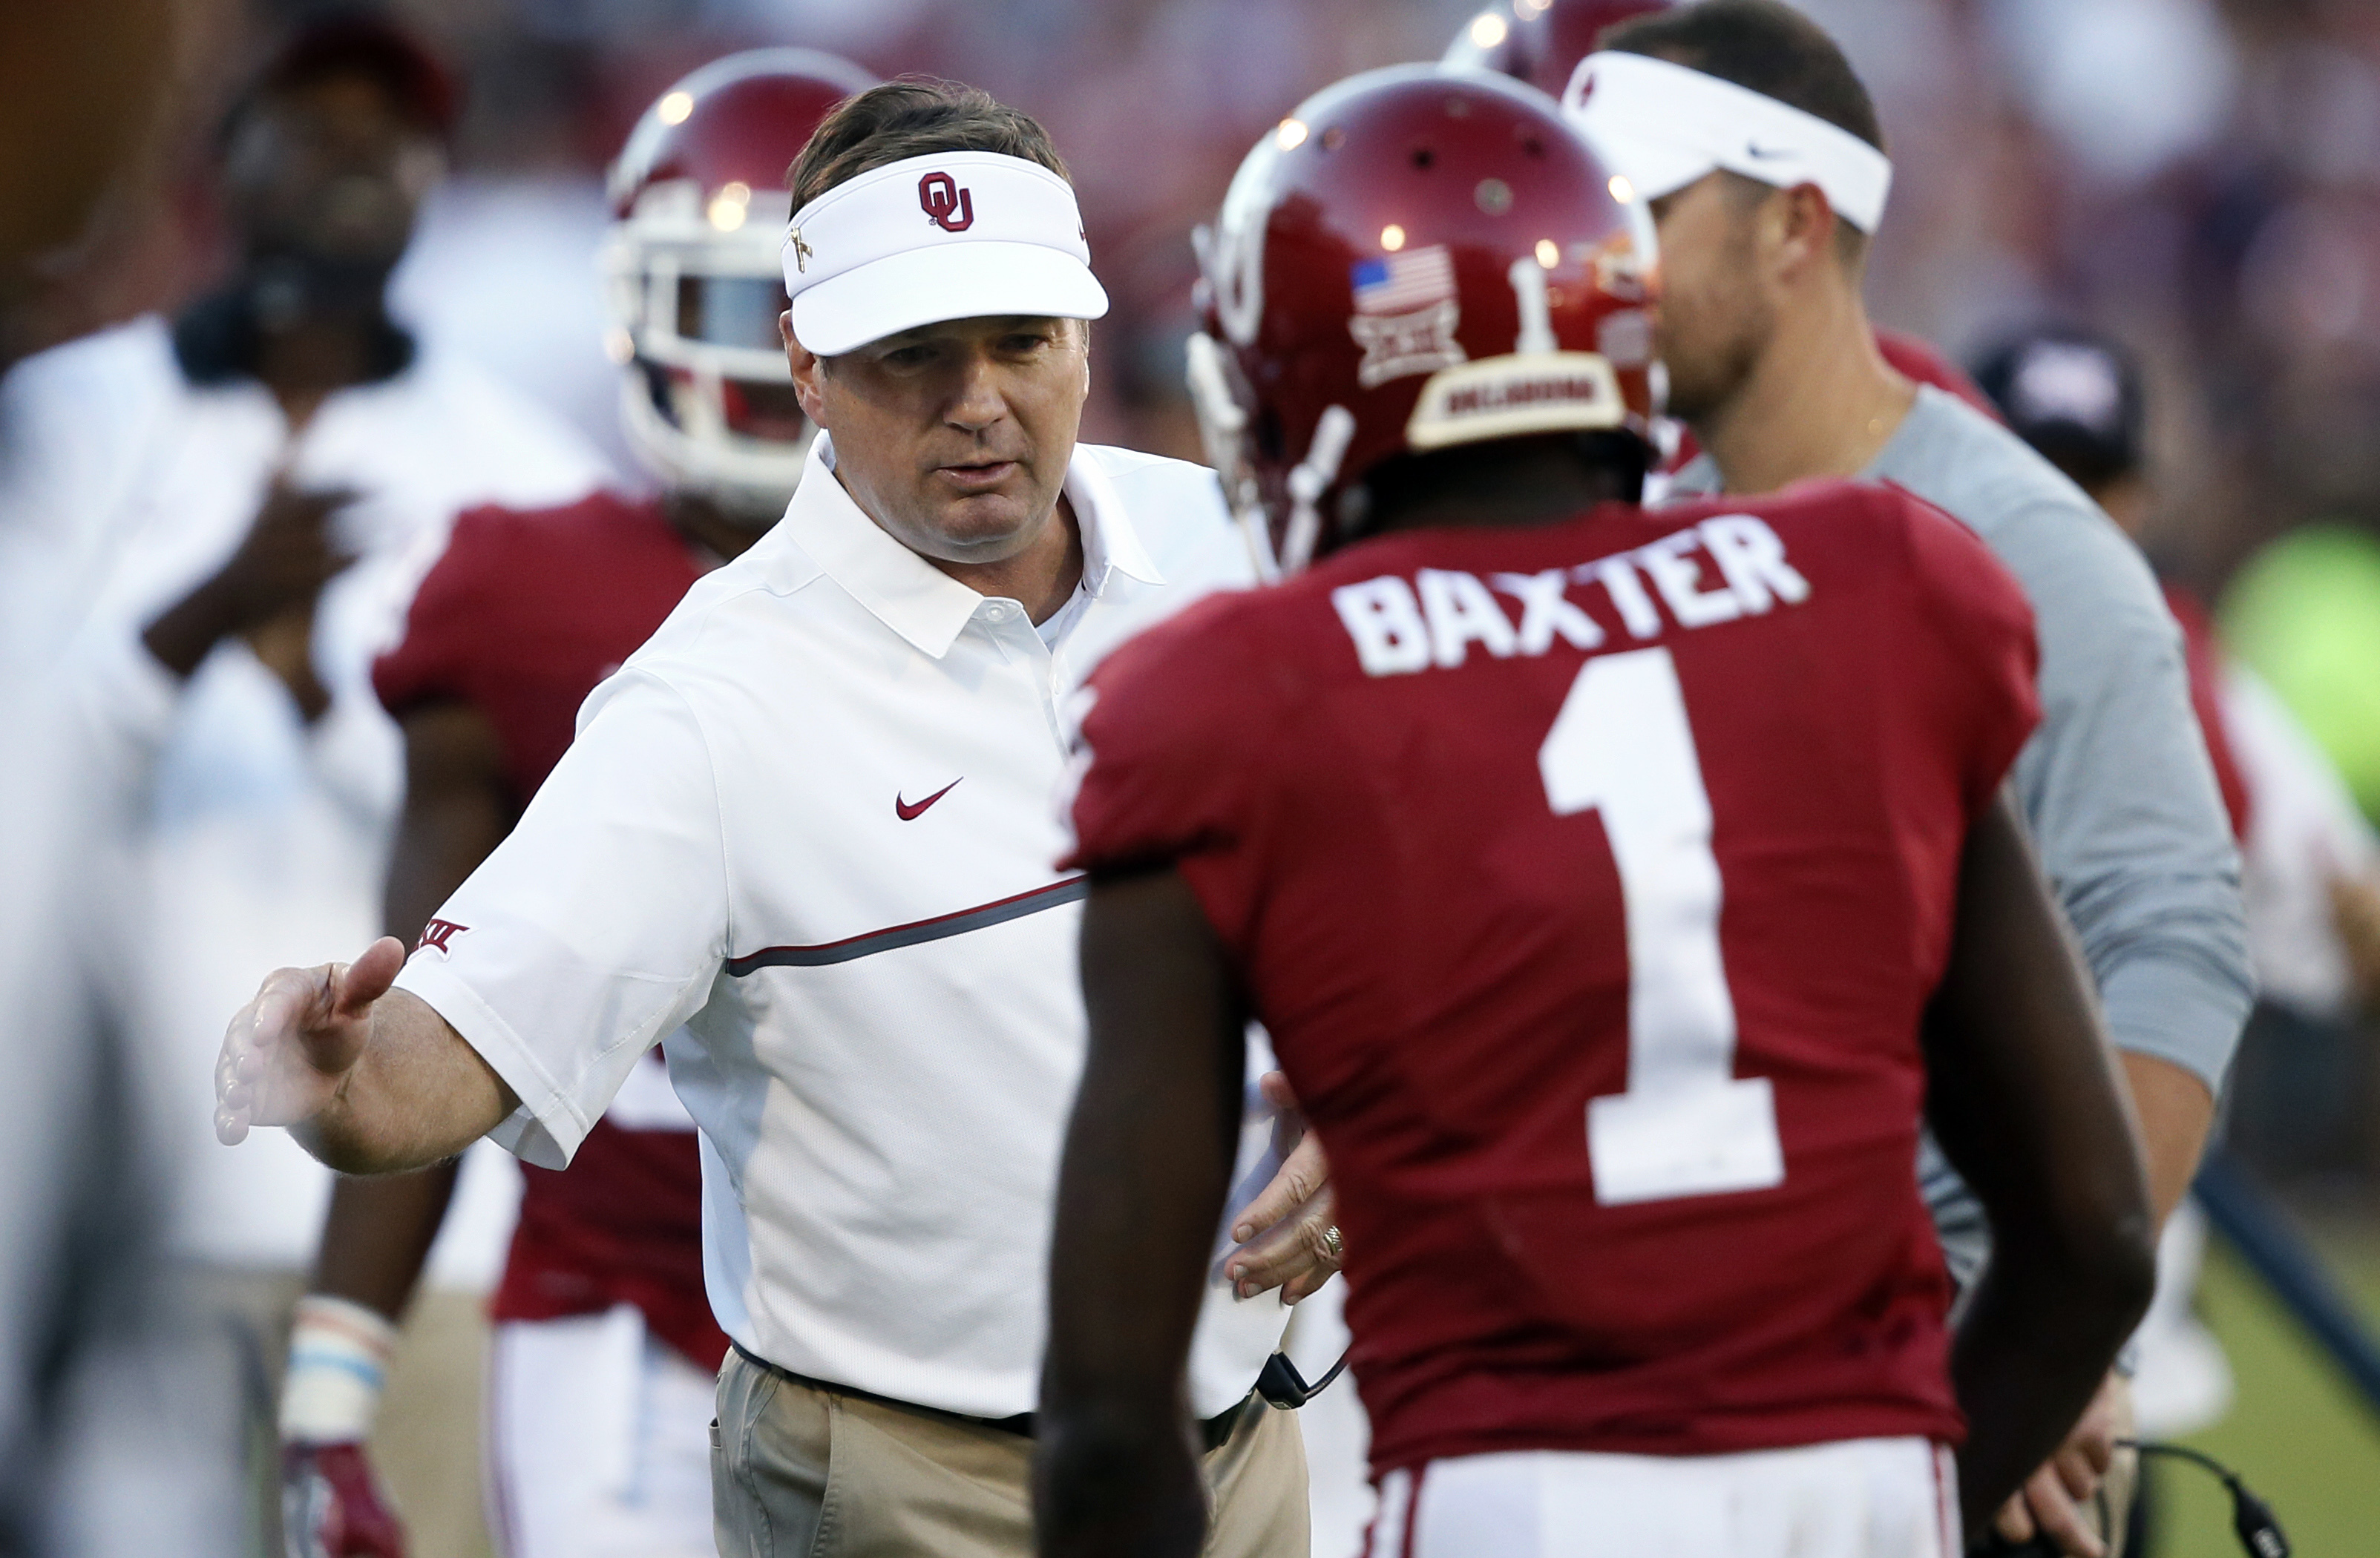 FILE - In this Sept. 1o, 2016, file photo, Oklahoma head coach Bob Stoops, left, greets wide receiver Jarvis Baxter (1) following a touchdown against Louisiana Monroe during an NCAA college football game in Norman, Okla. With Baylor and West Virginia stil